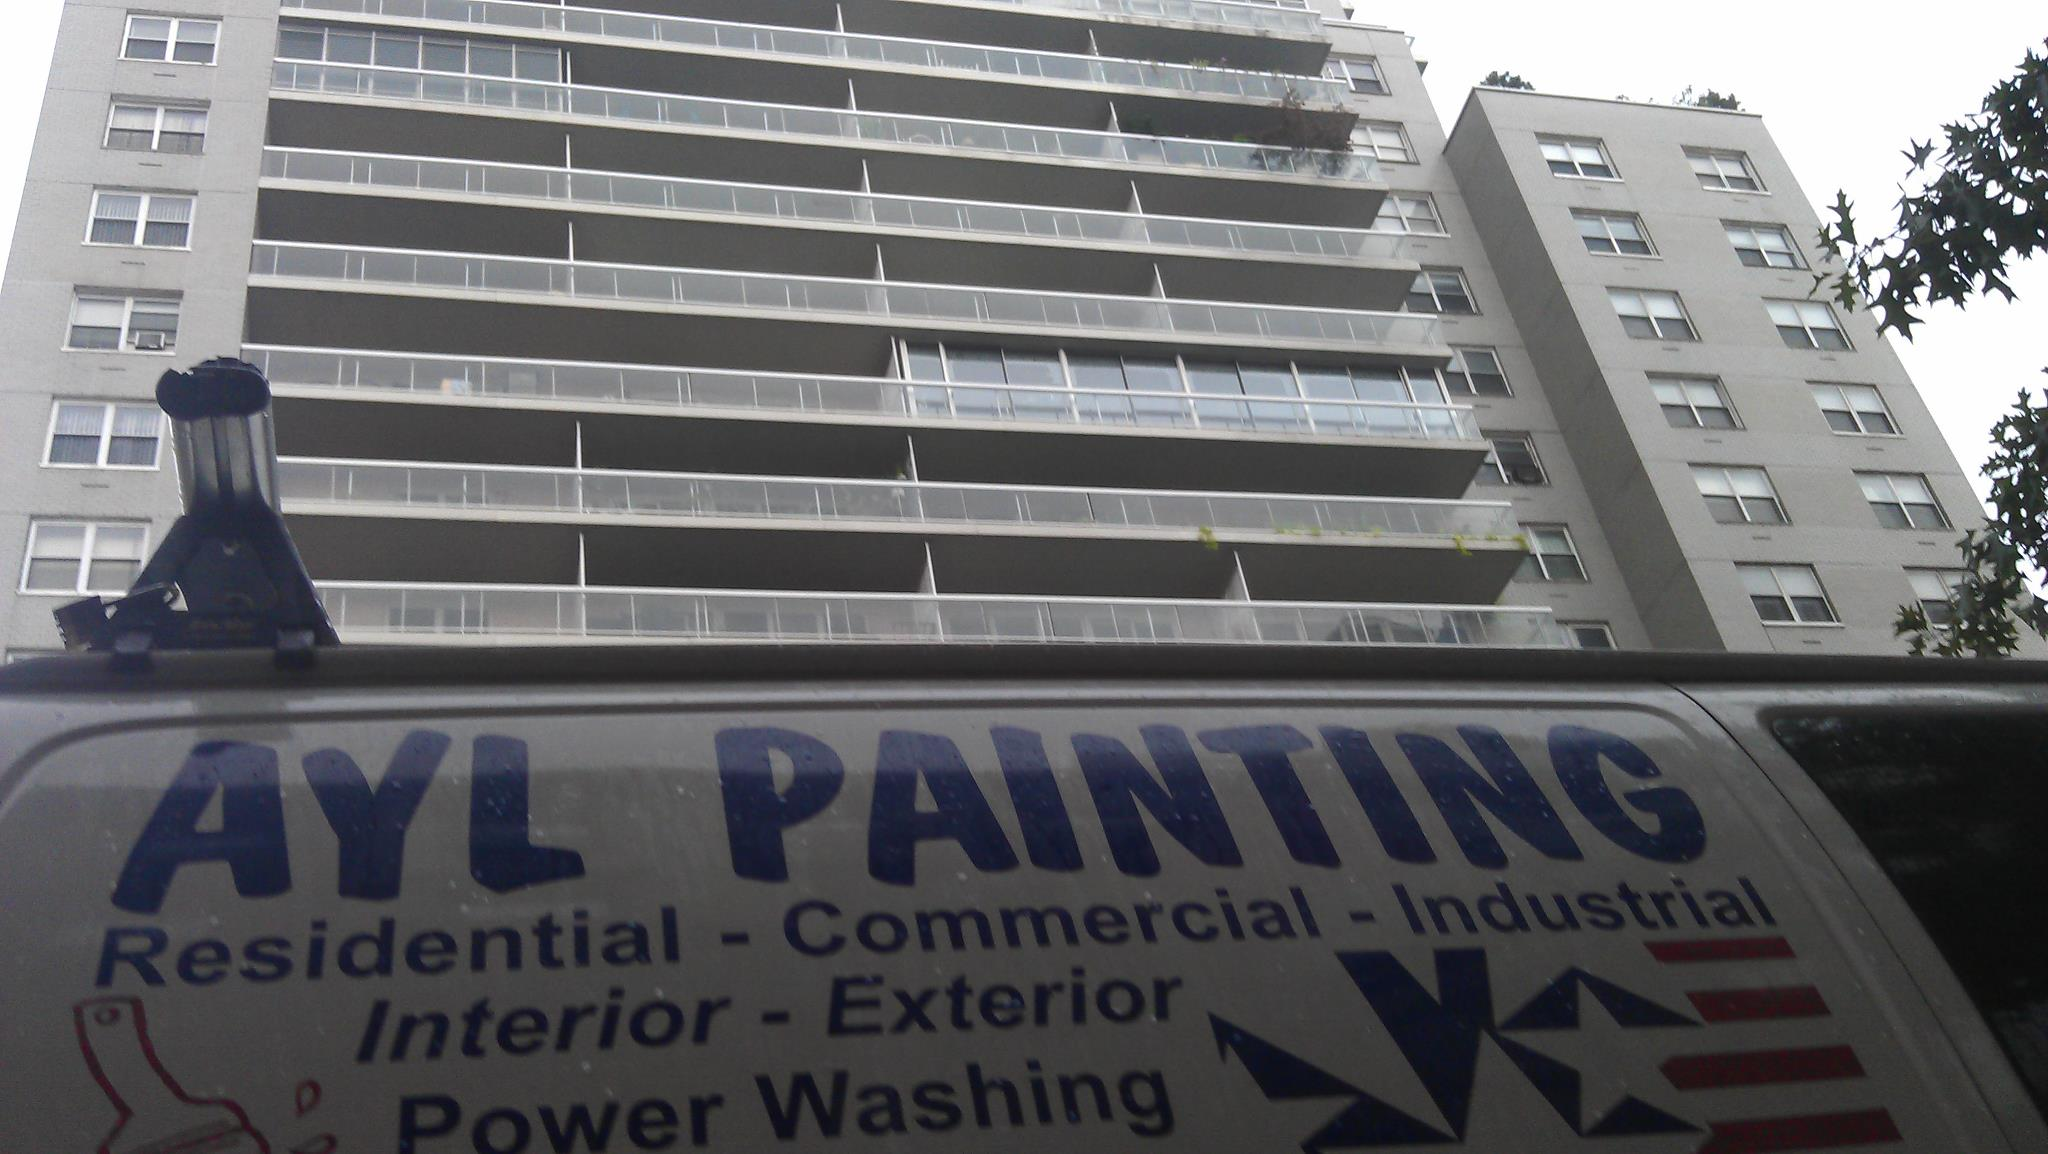 gallery ayl painting services interior painting services